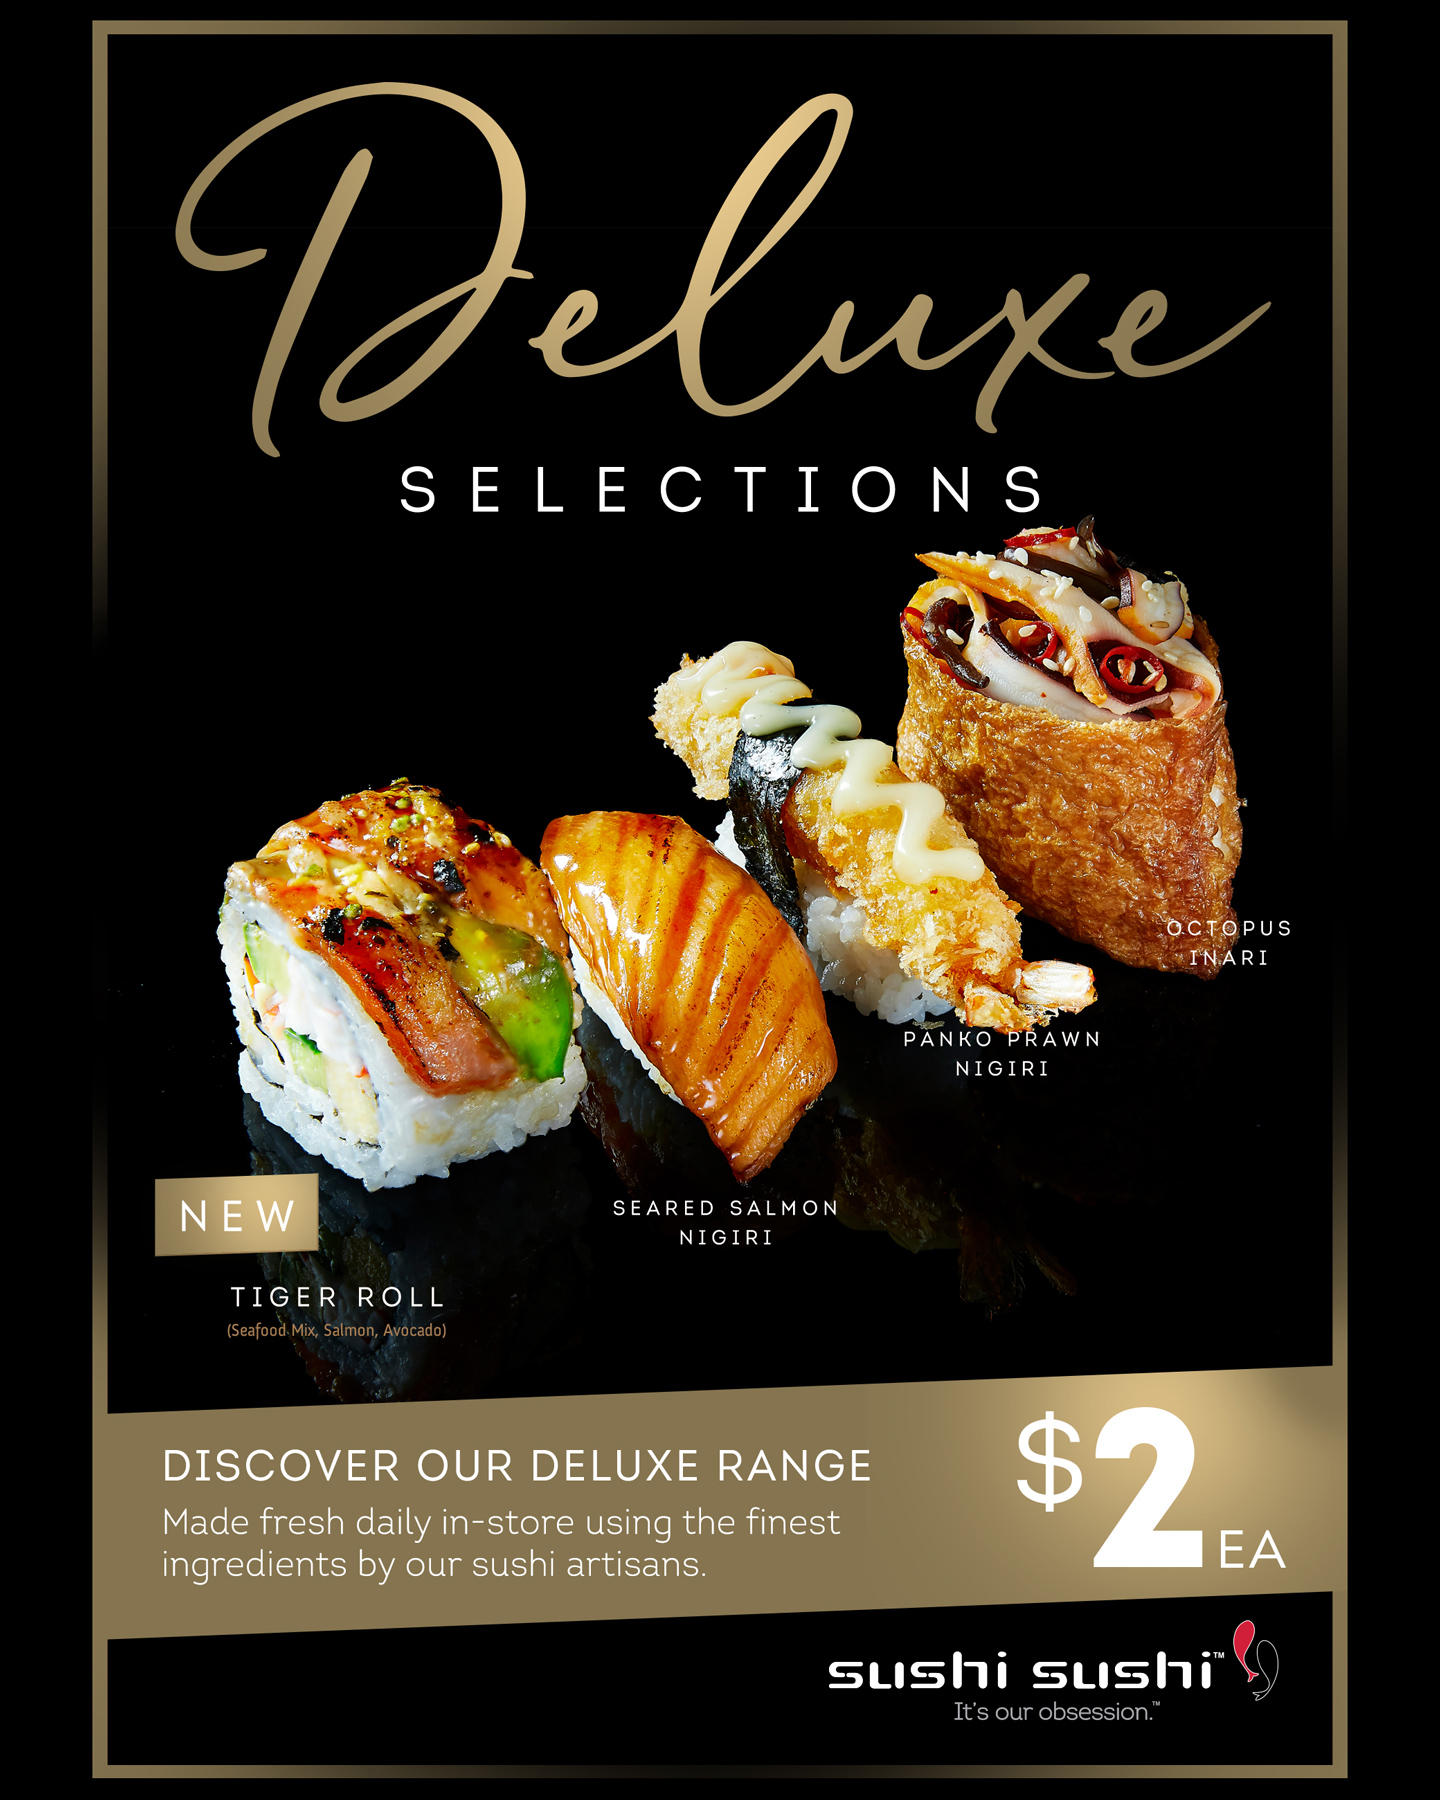 sushit sushi deluxe selections